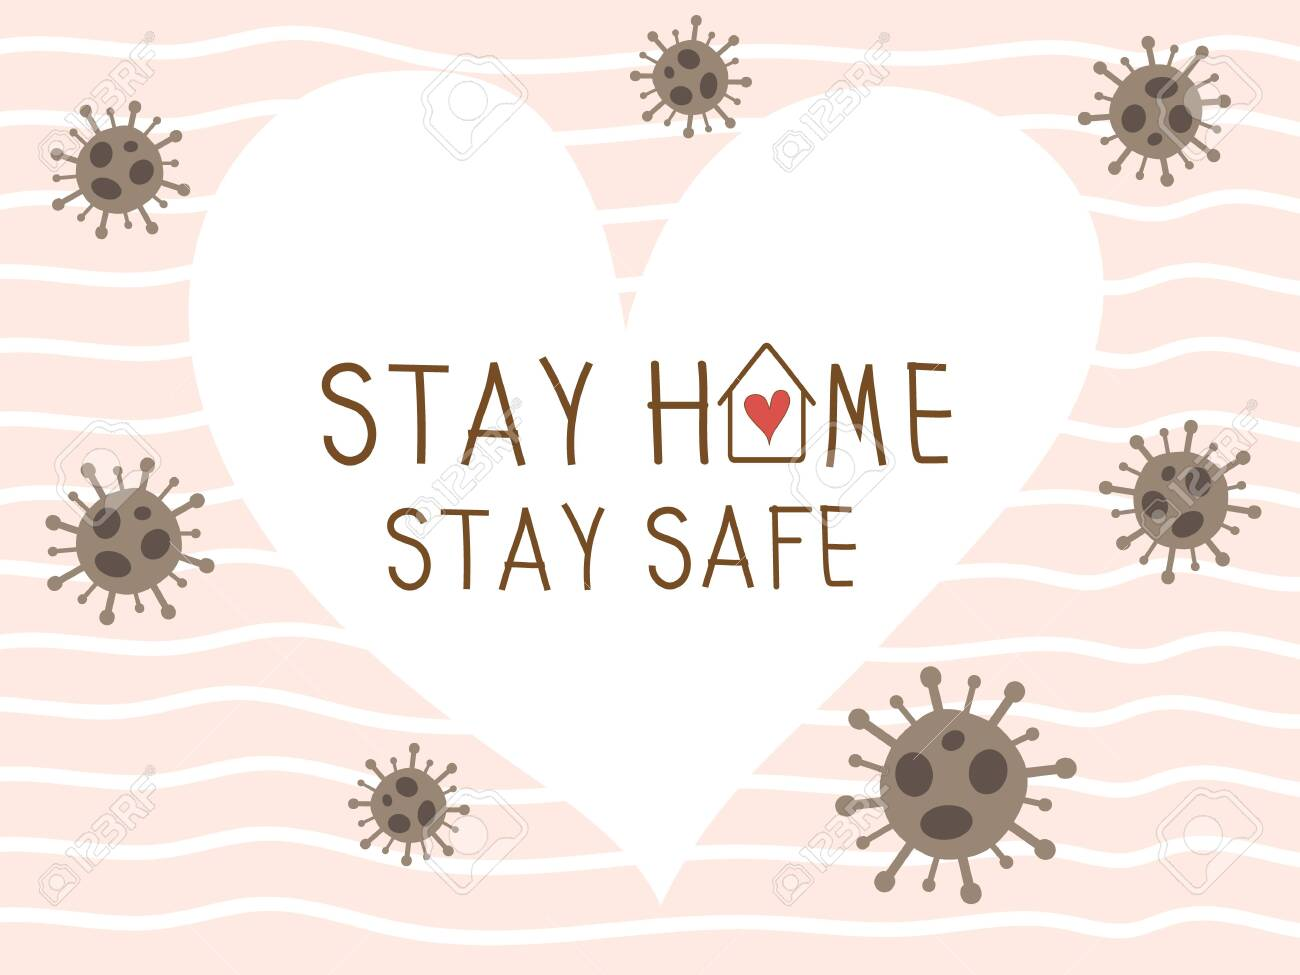 Stay home stay safe vector background with white heart and pink wallpaper. Coronavirus or covid 19 campaign for awareness and self quarantine for prevention disease pandemic. Social distancing concept - 148865209